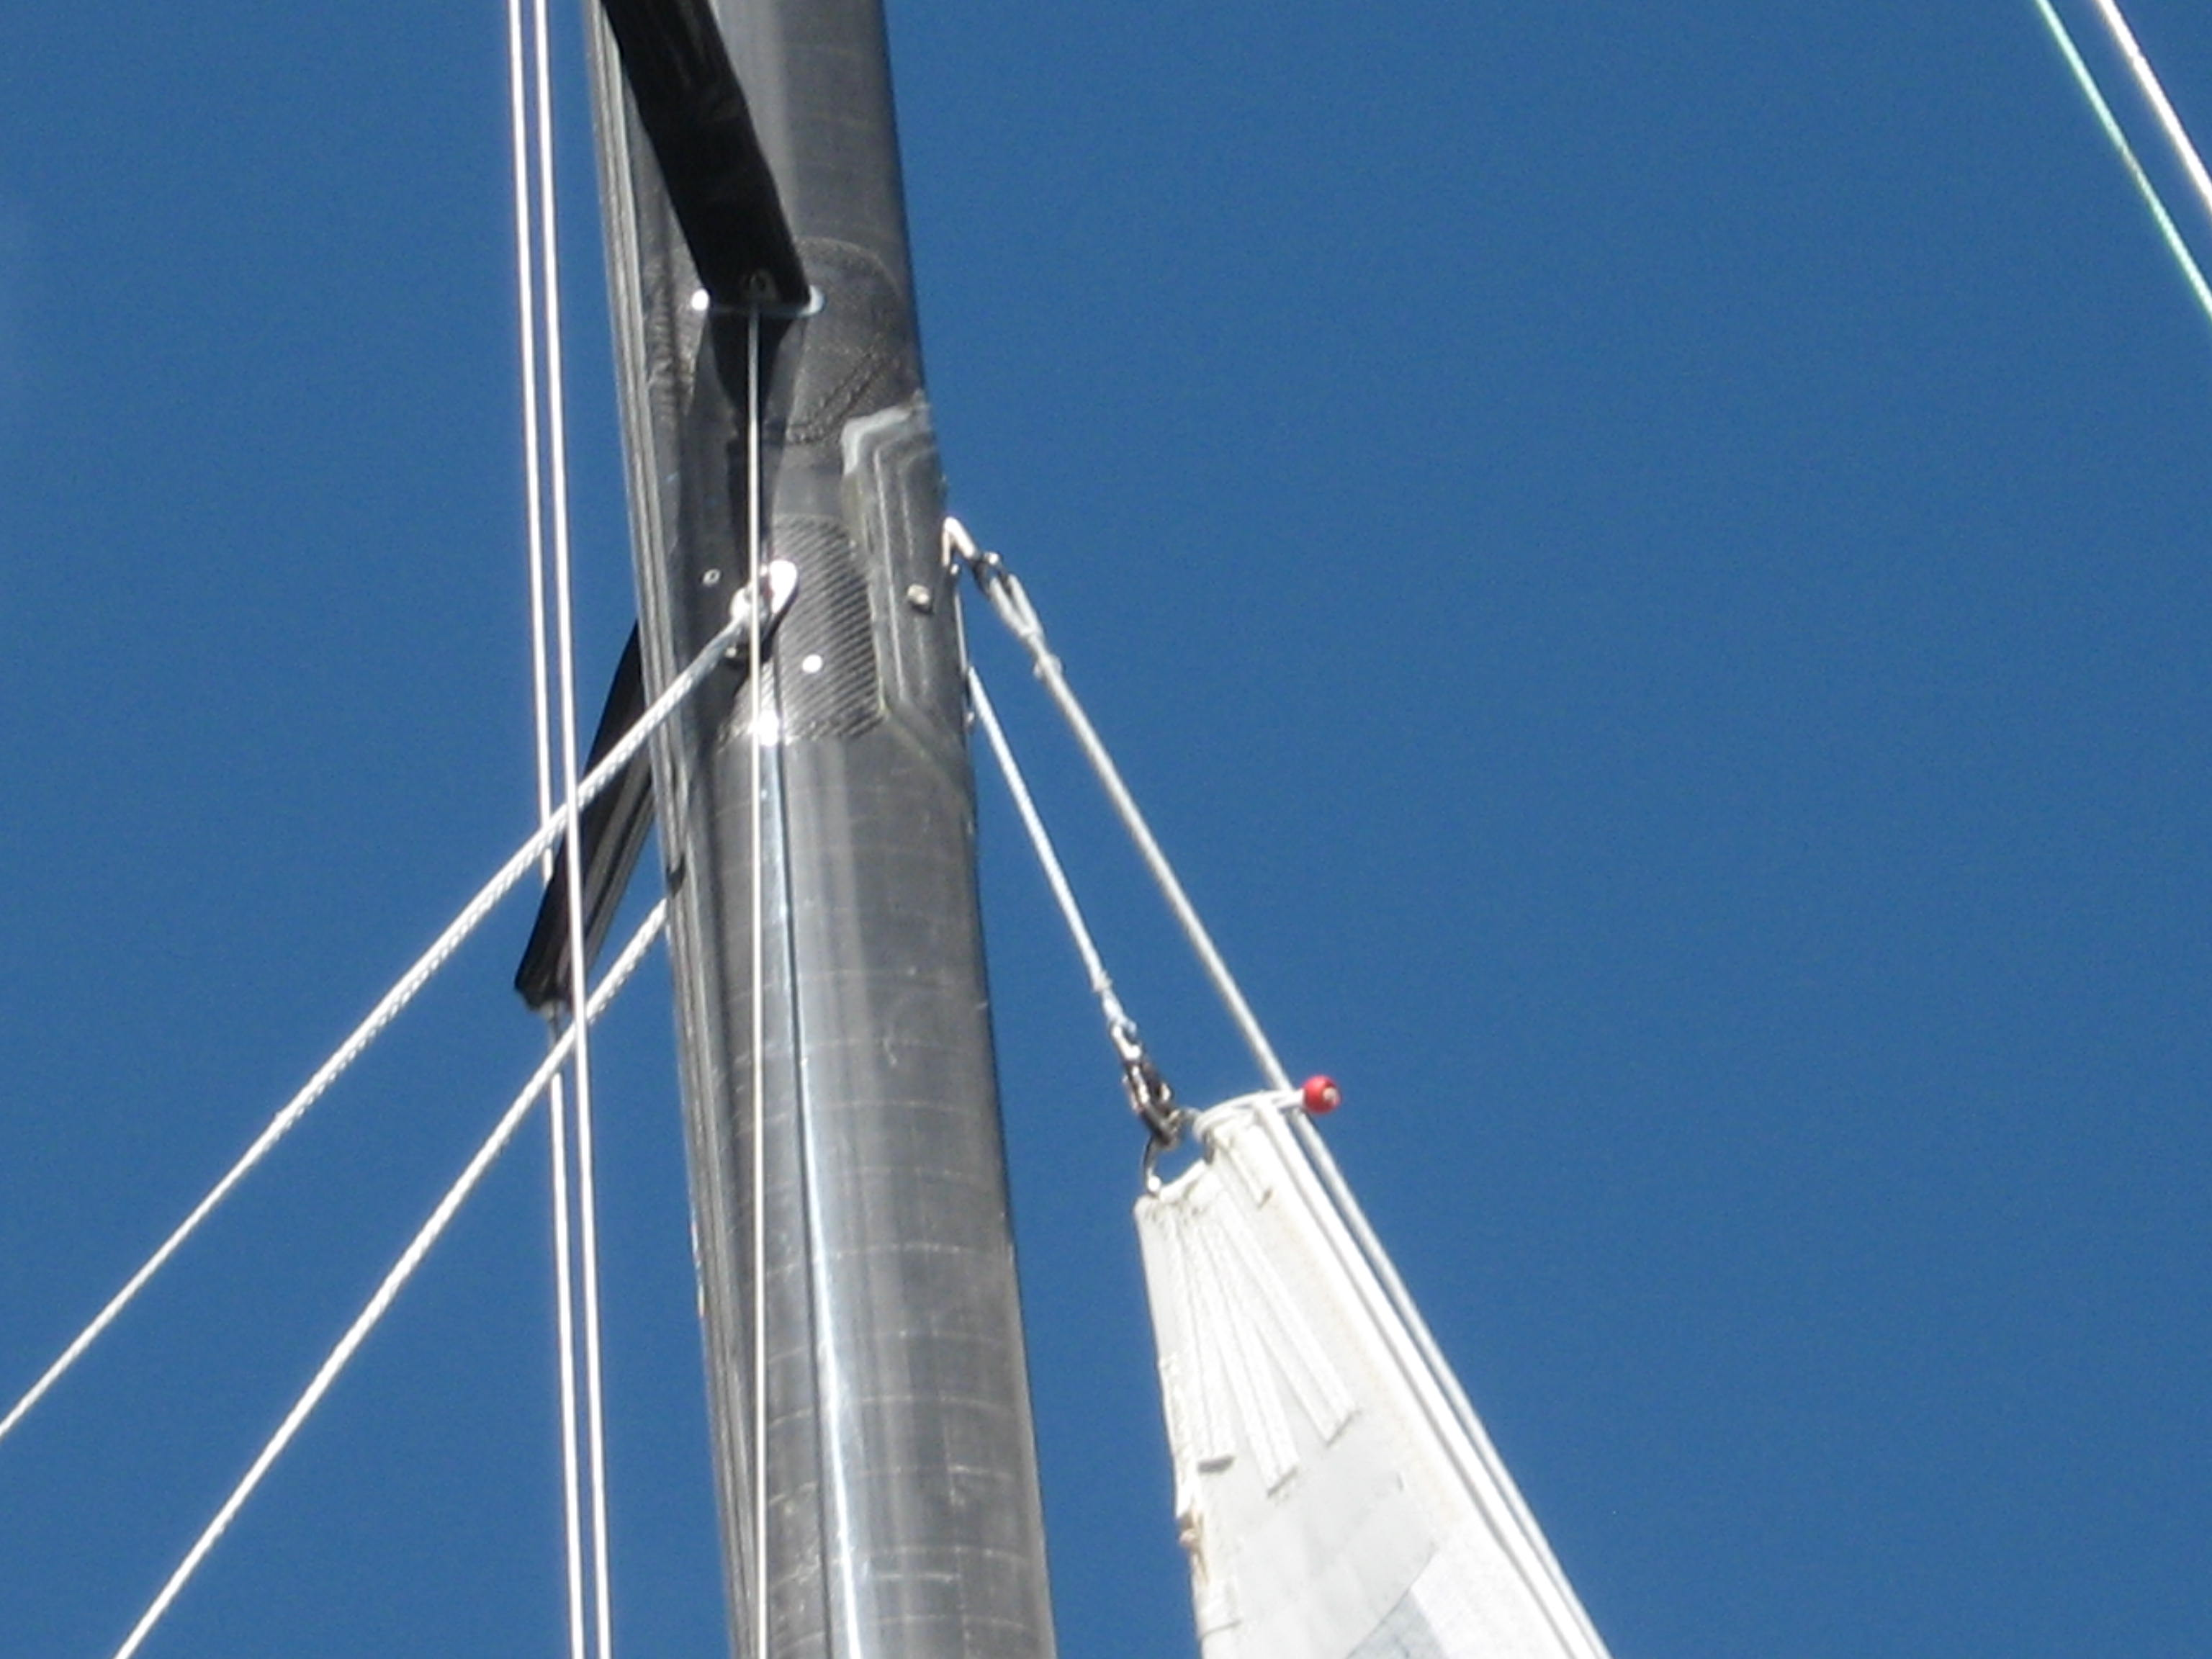 Staysail stay attachment point on the spar and runner take offs.